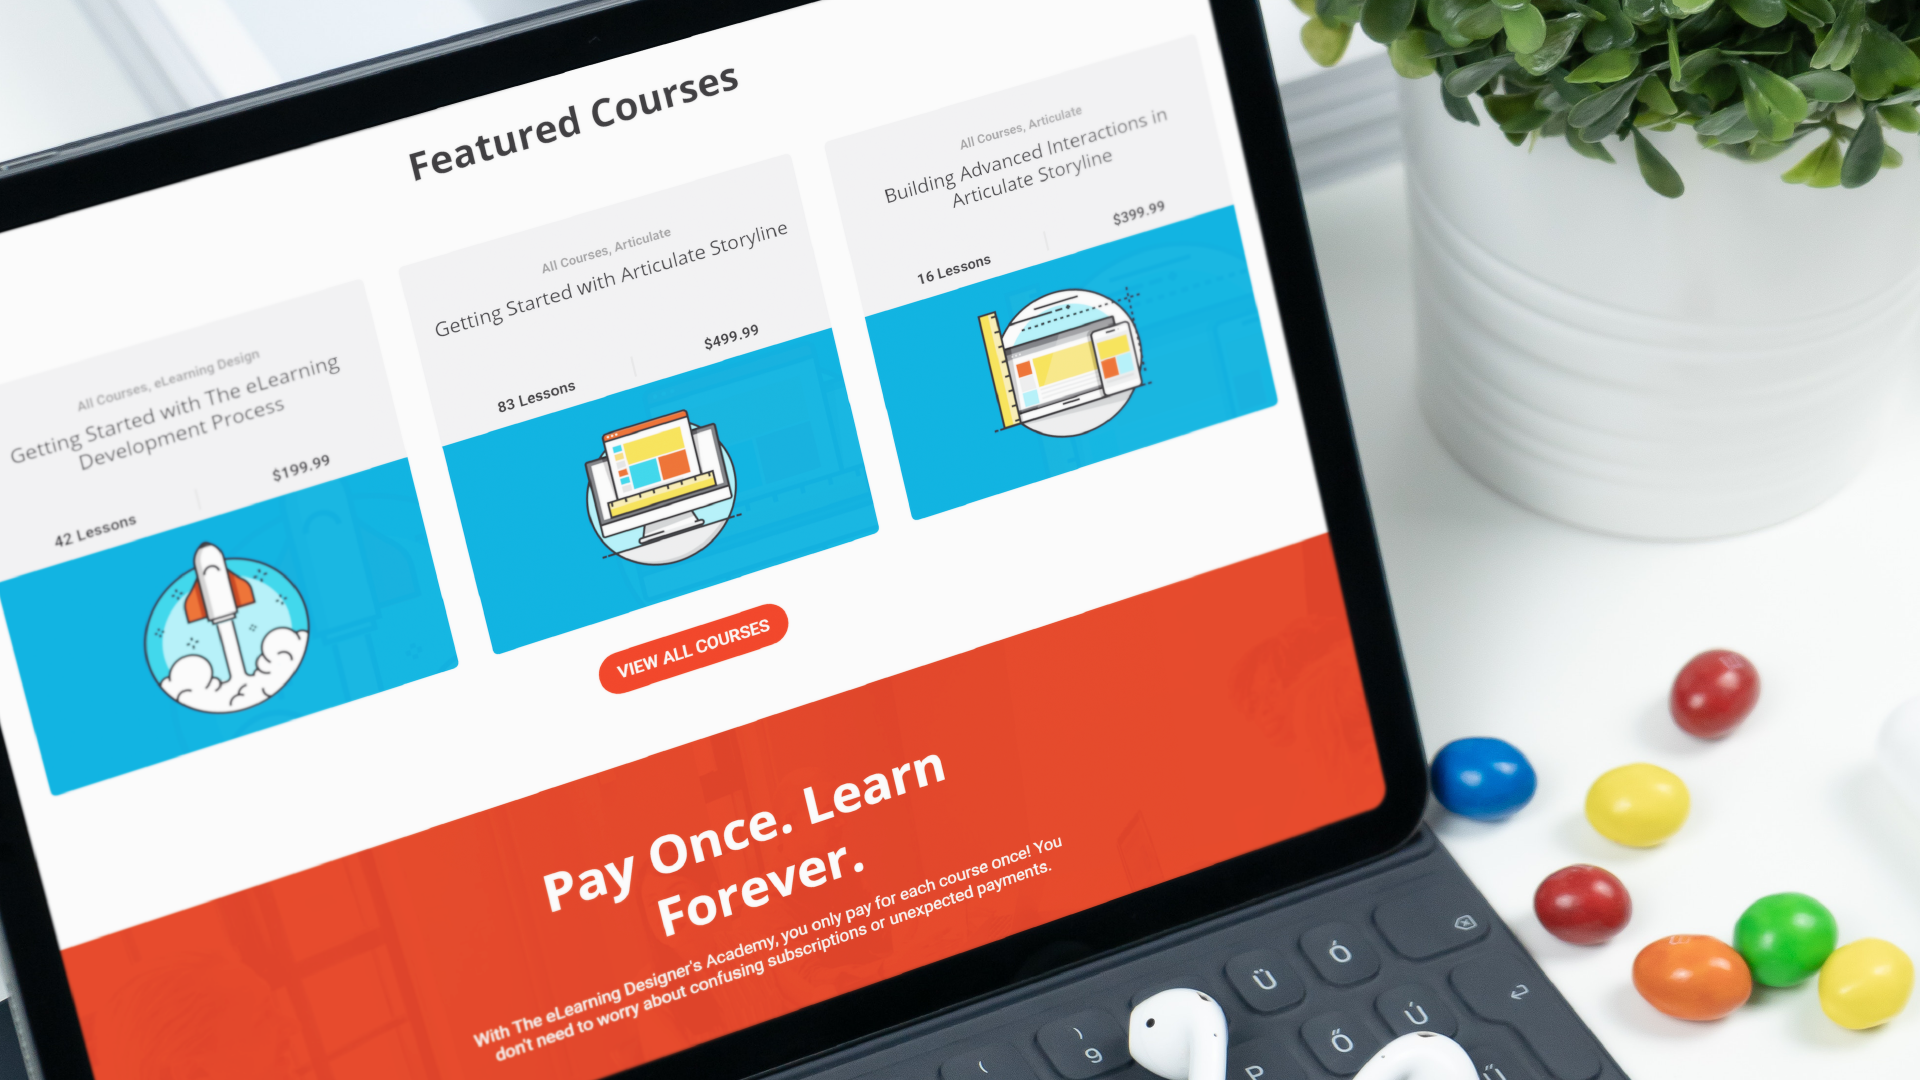 Check Out A Sneak Peek of The eLearning Designer's Academy by Tim Slade eLearning blog